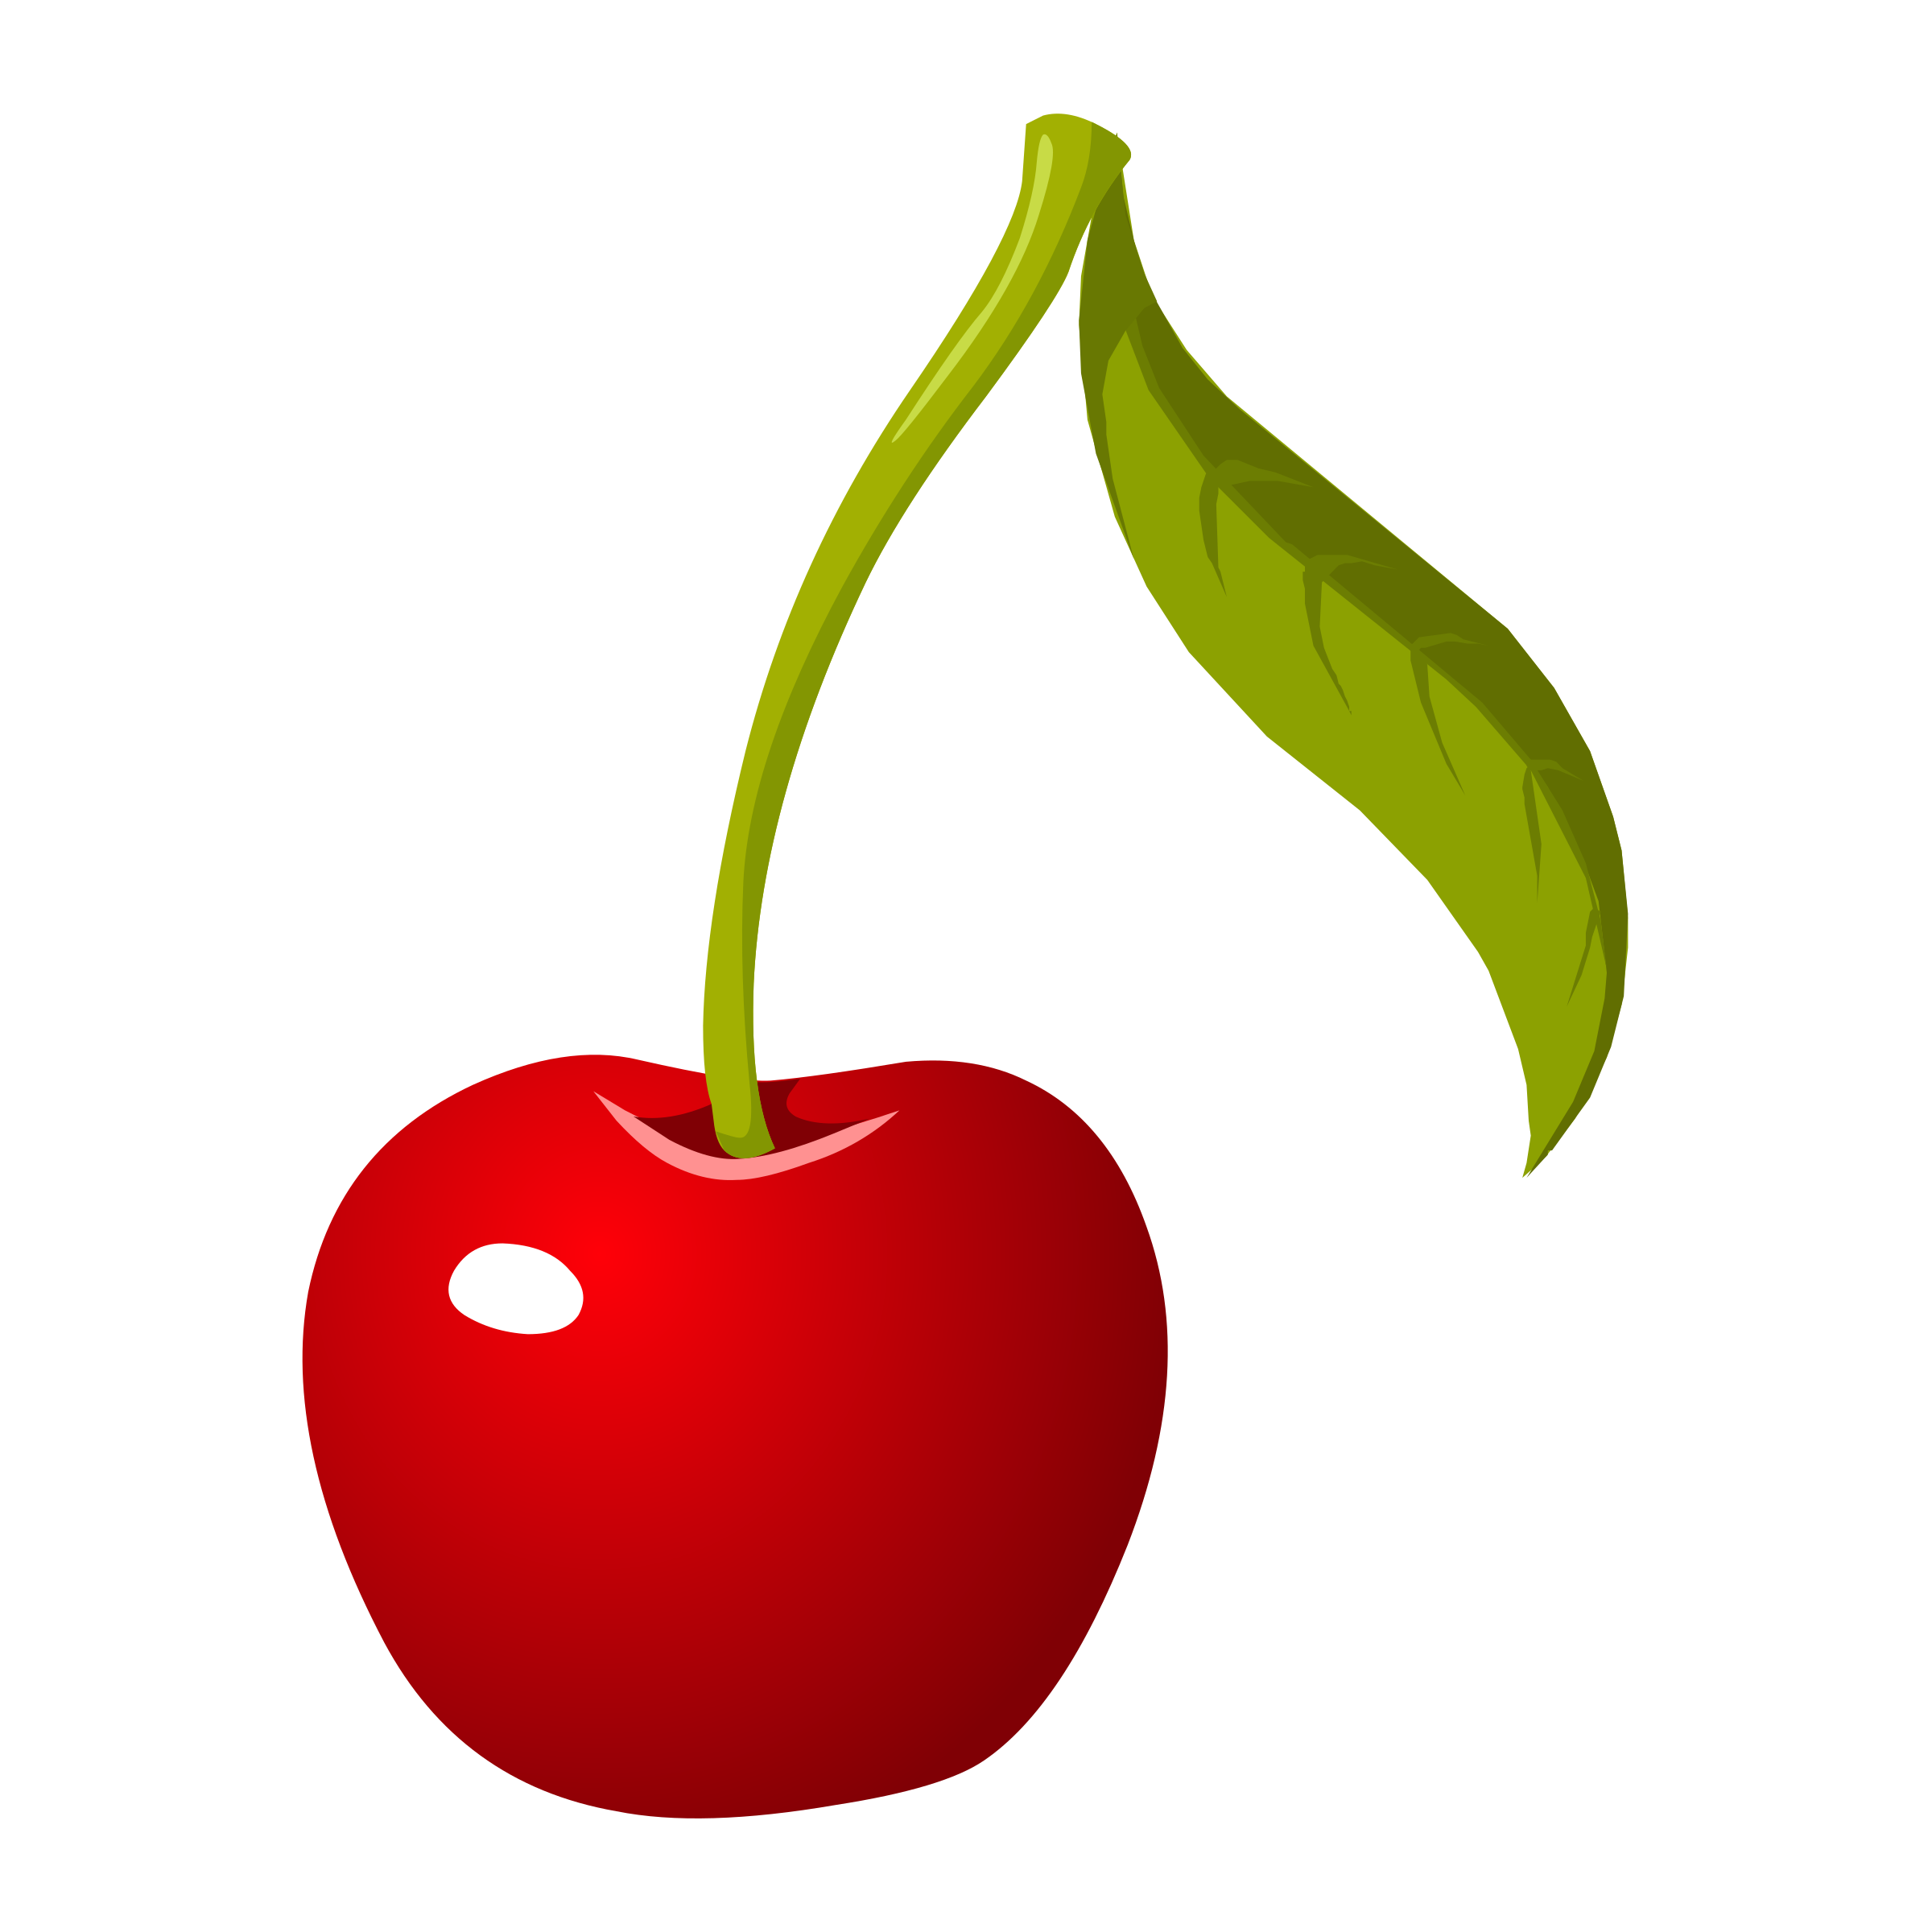 Cherries clipart big fruit. Food cherry image png